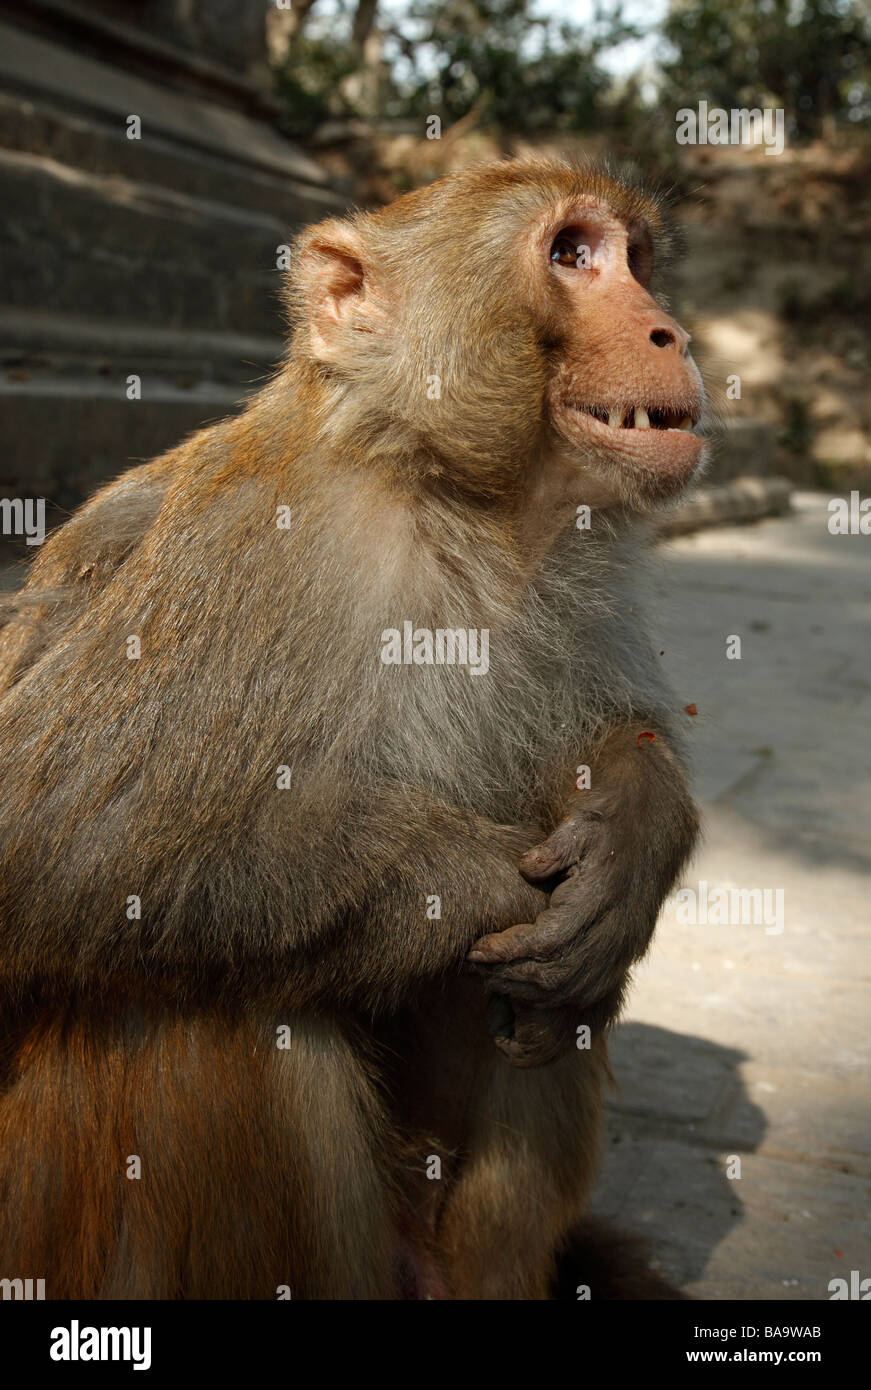 A large male macaque monkey waits patiently for nuts from tourists at the Pashupatinath Temple in Kathmandu, Nepal - Stock Image